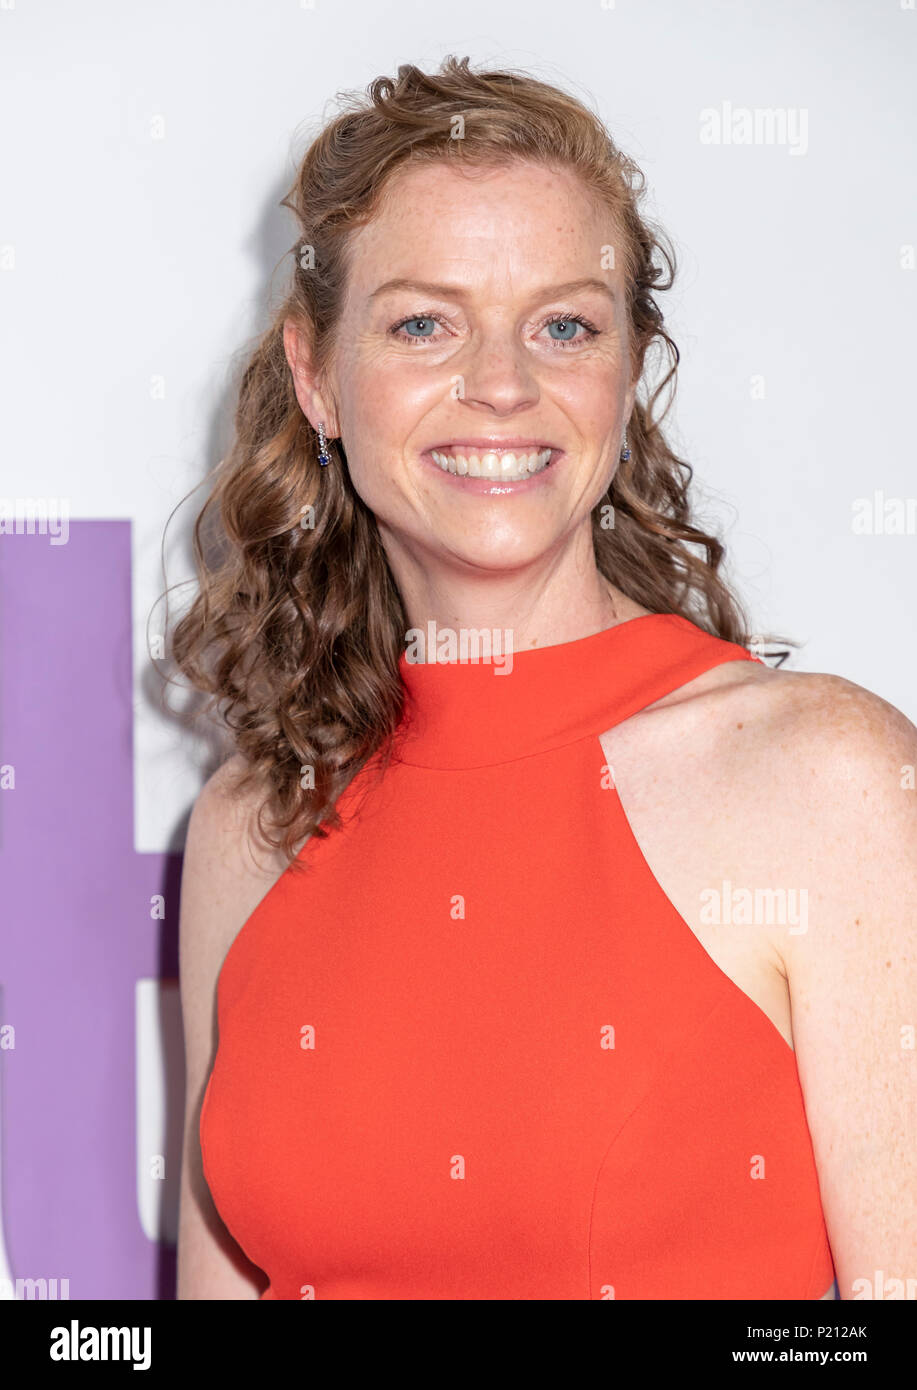 New York, NY, USA - June 12, 2018: Claire Scanton attends the New York special screening of the Netflix film 'Set It Up' at AMC Loews Lincoln Square Credit: Sam Aronov/Alamy Live News - Stock Image